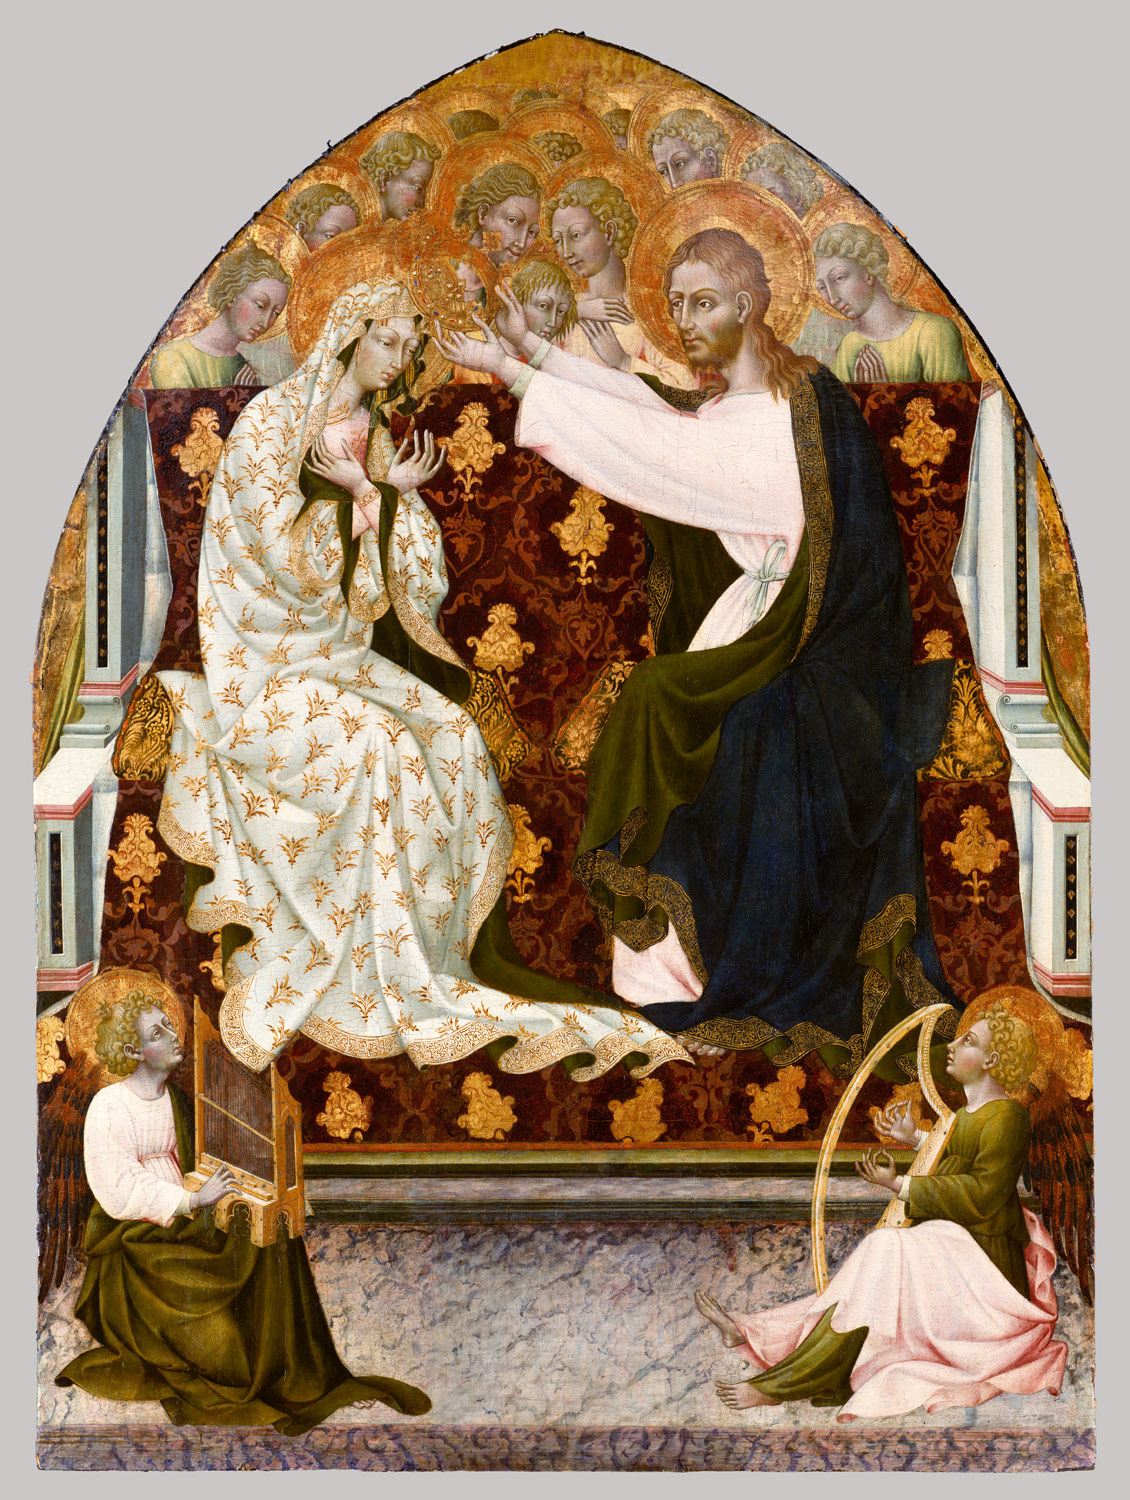 Coronation of the Virgin